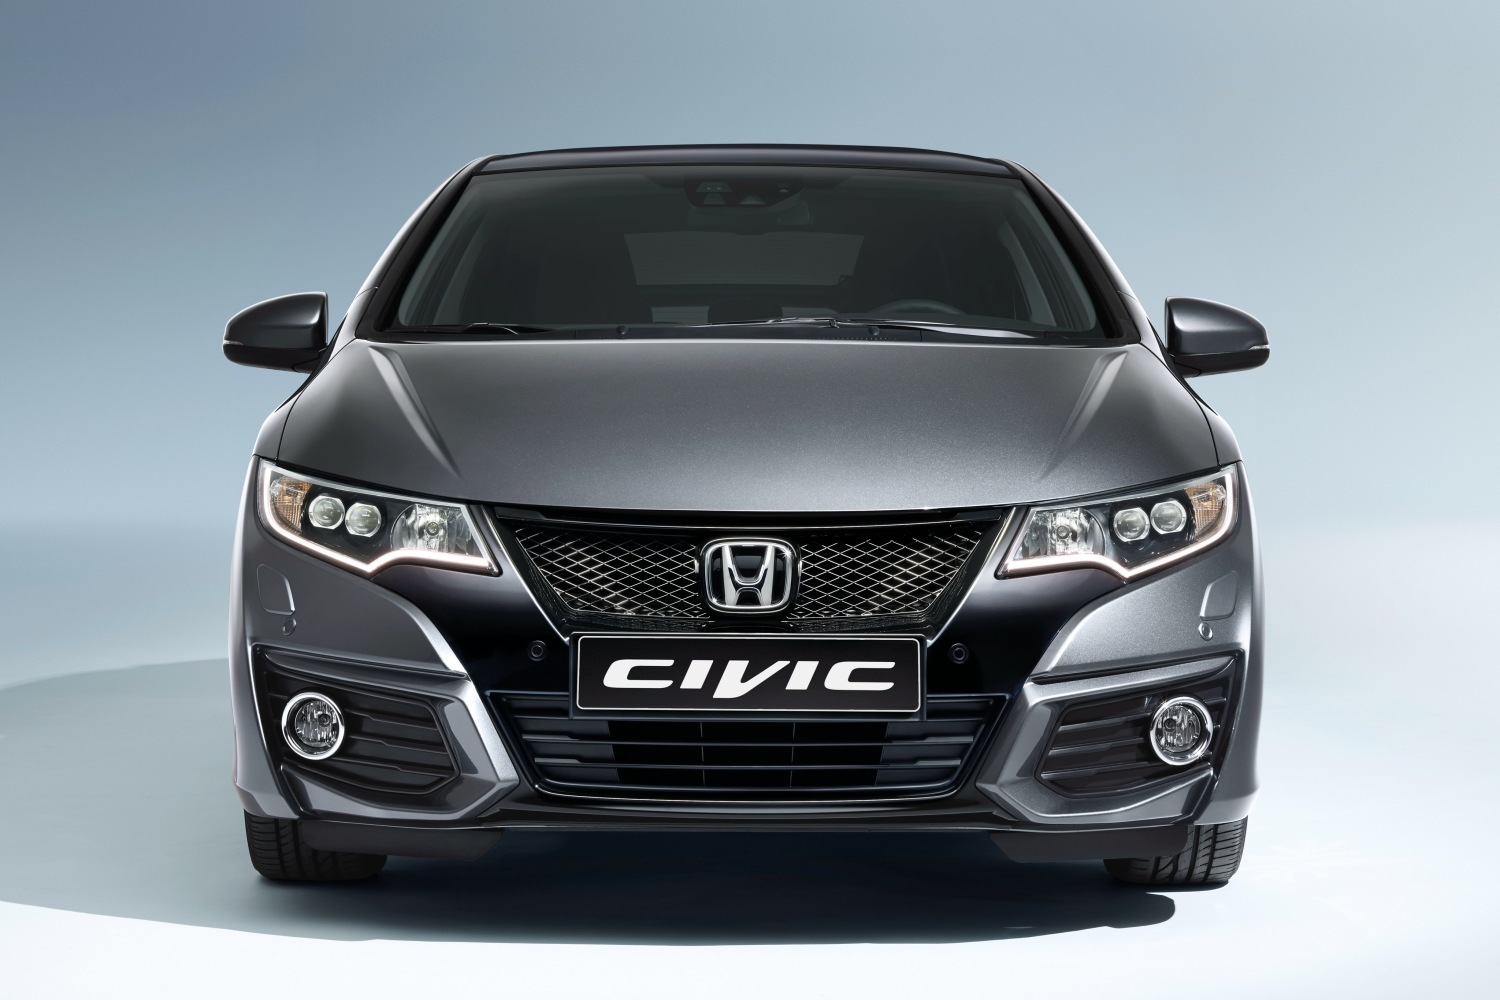 Honda Civic 2015 01